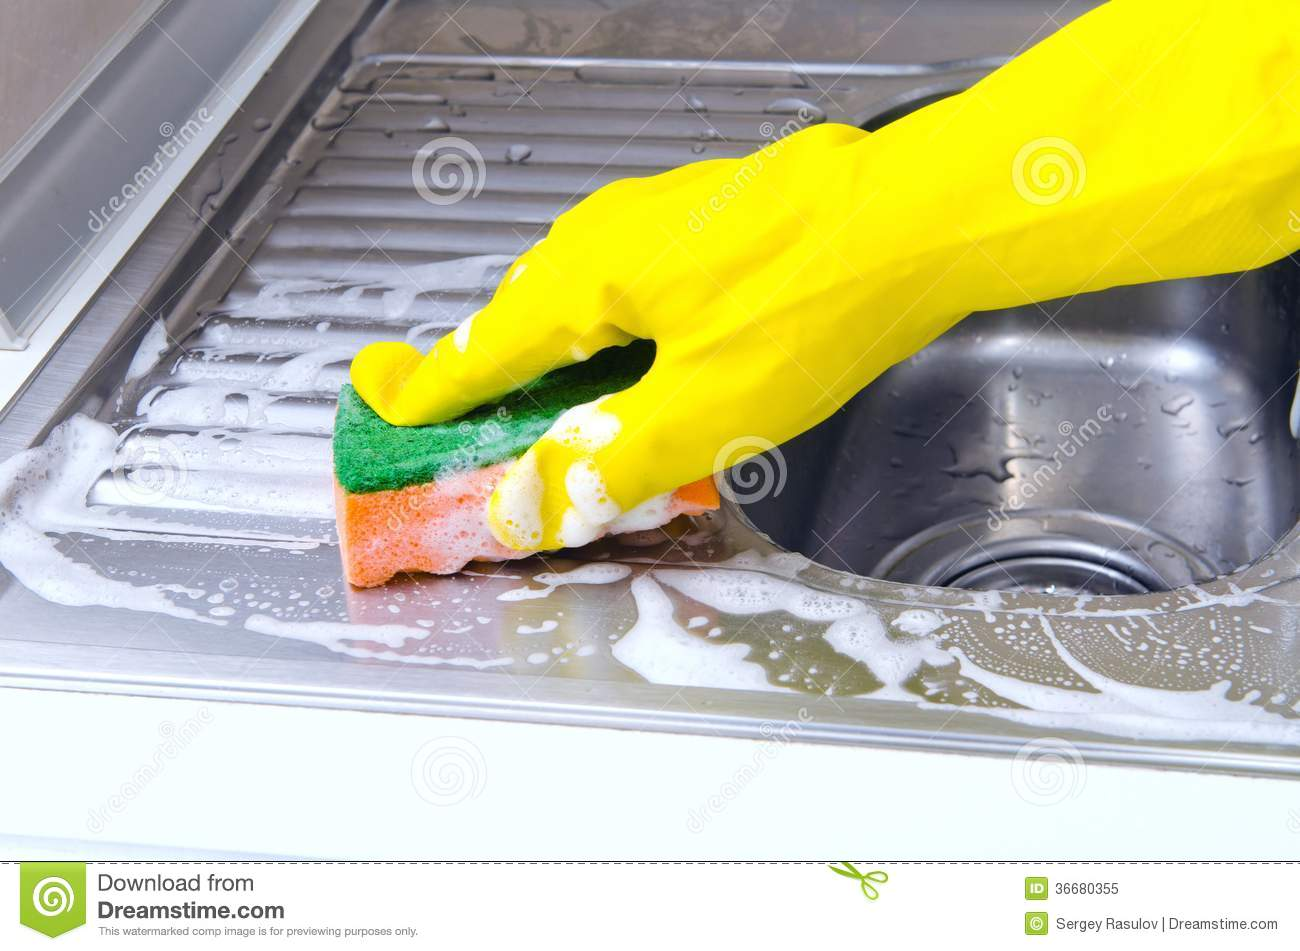 Cleaning The Kitchen Sink Royalty Free Stock Photo - Image: 36680355